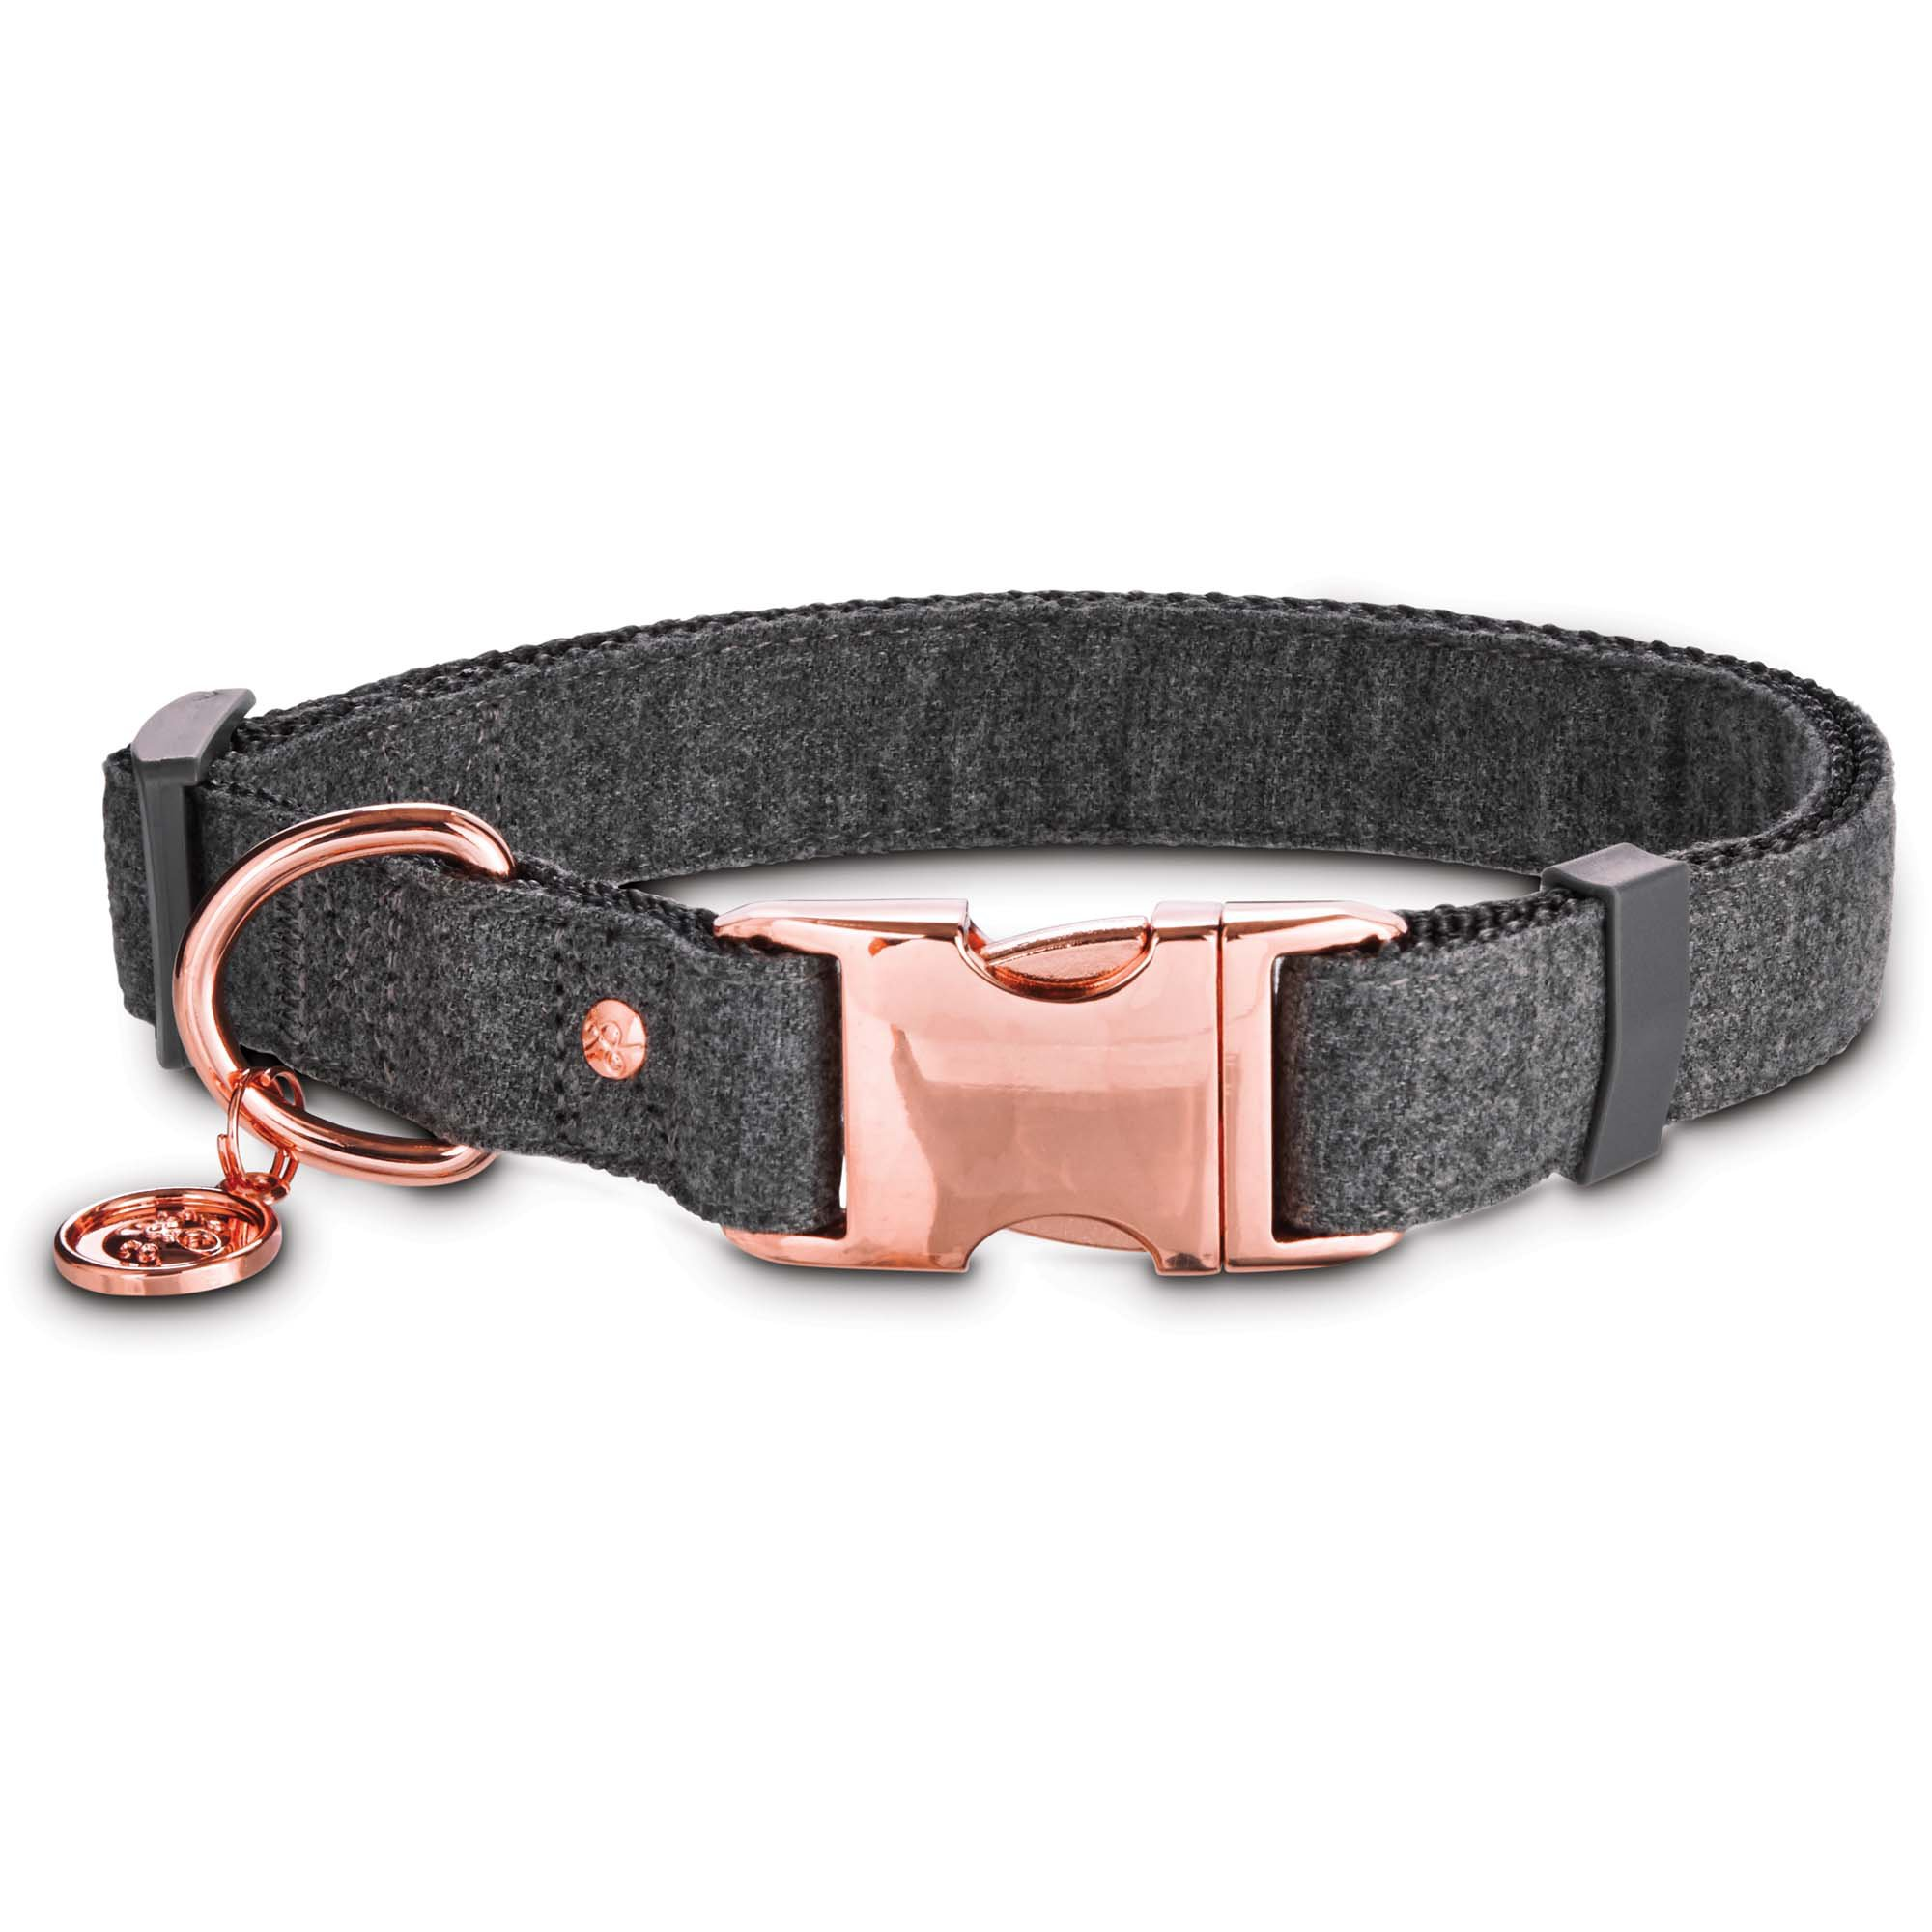 dog collars harnesses u0026 leashes for all sizes petco